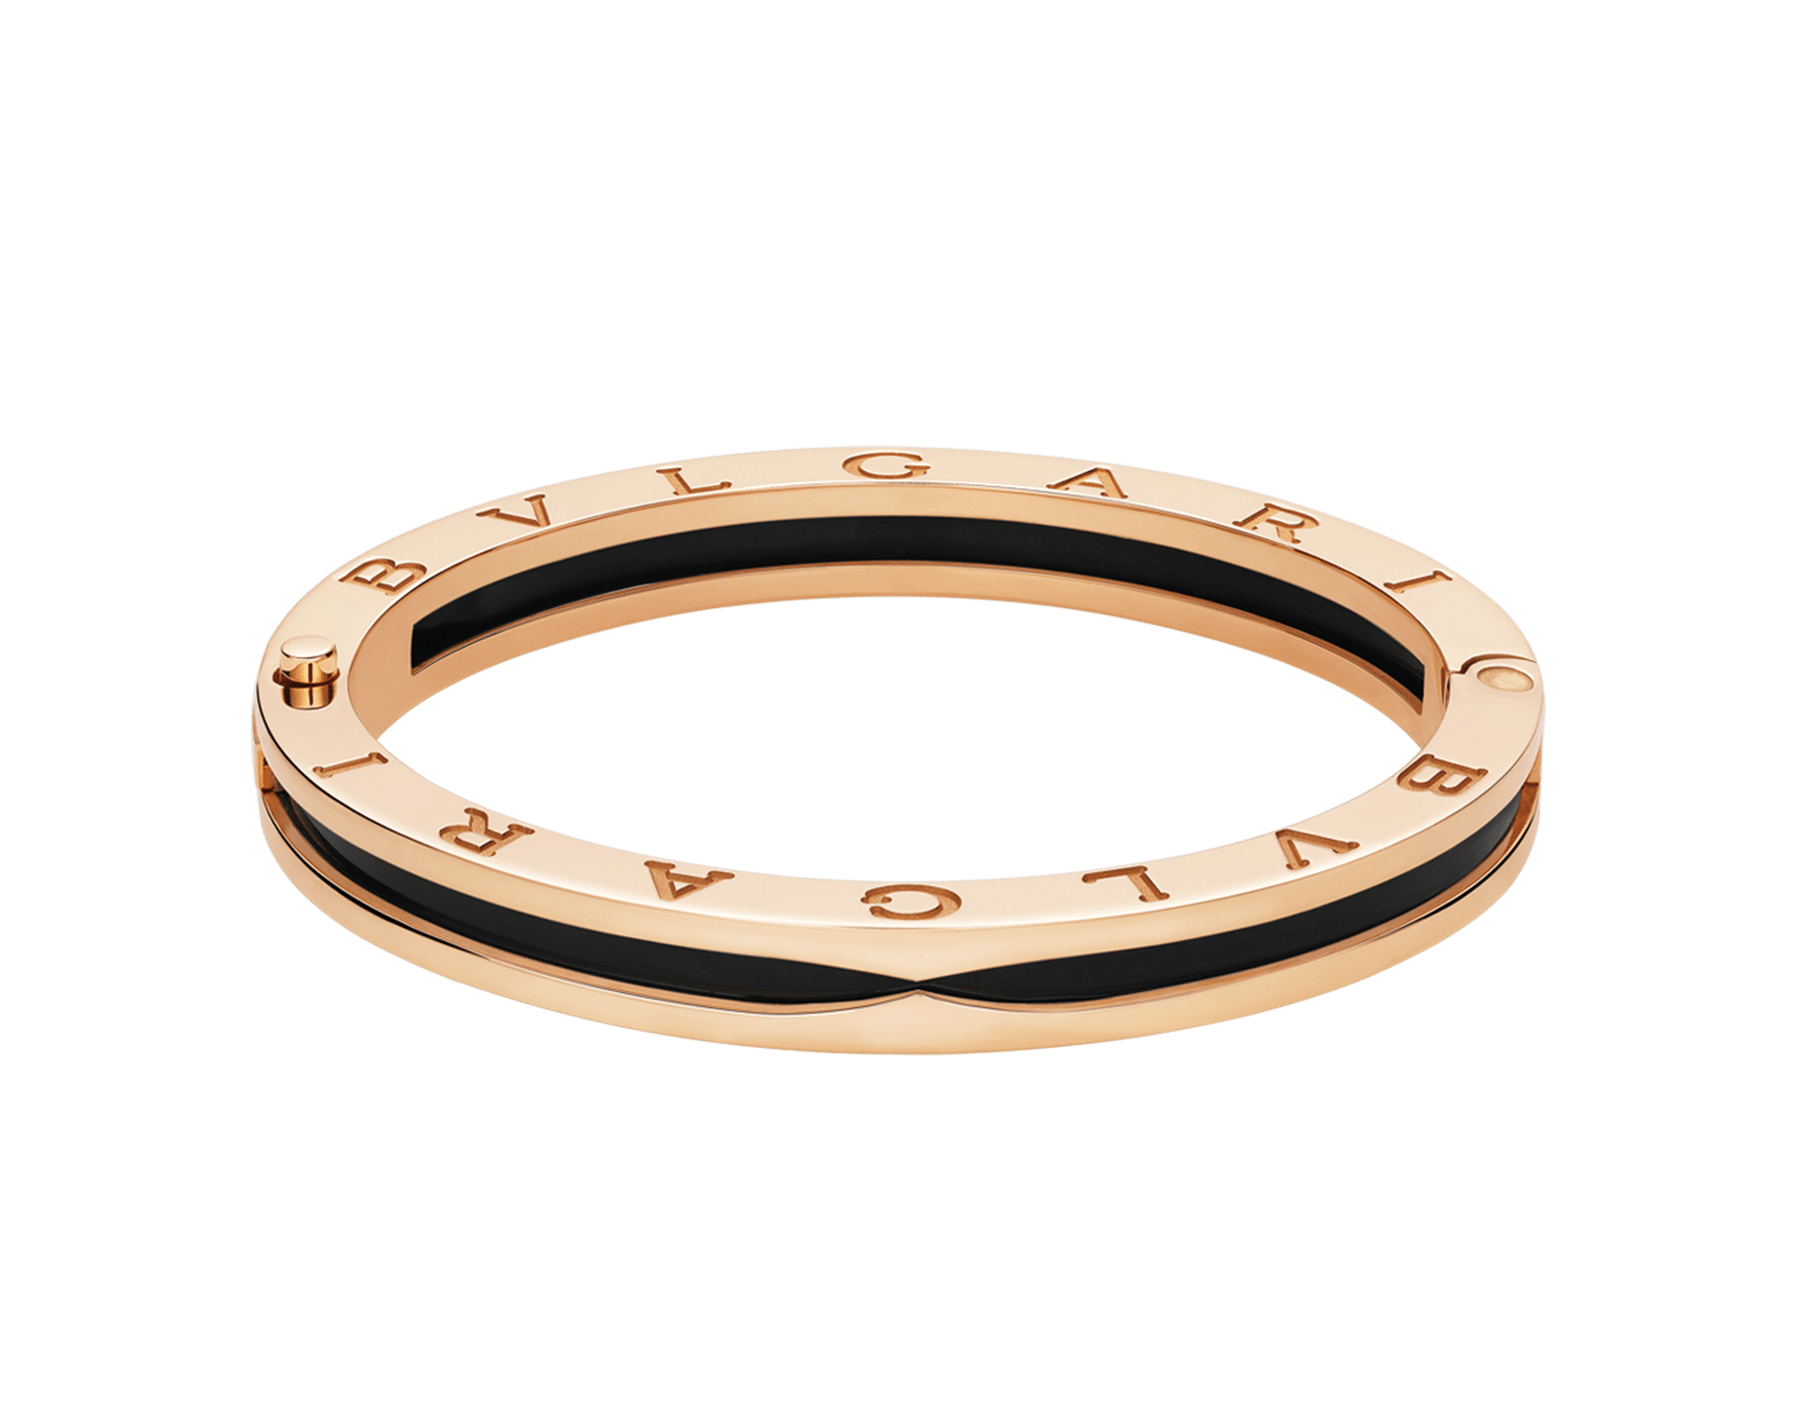 B.zero1 bangle bracelet in 18kt rose gold and black ceramic. 347576 image 1